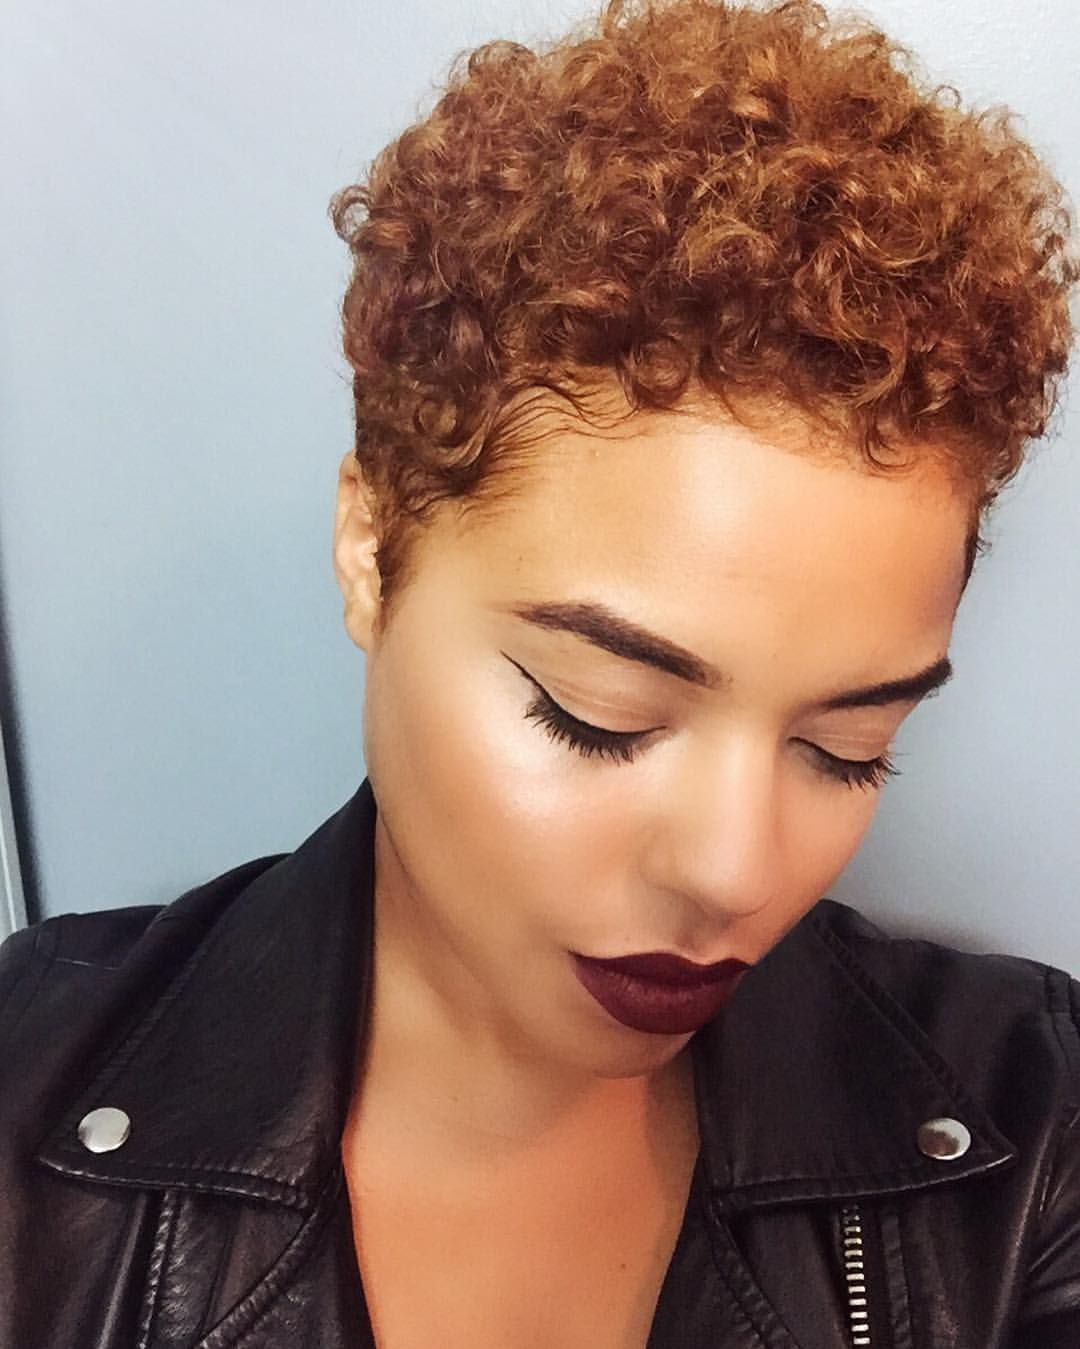 50+ Short curled hairstyles black hair ideas in 2021